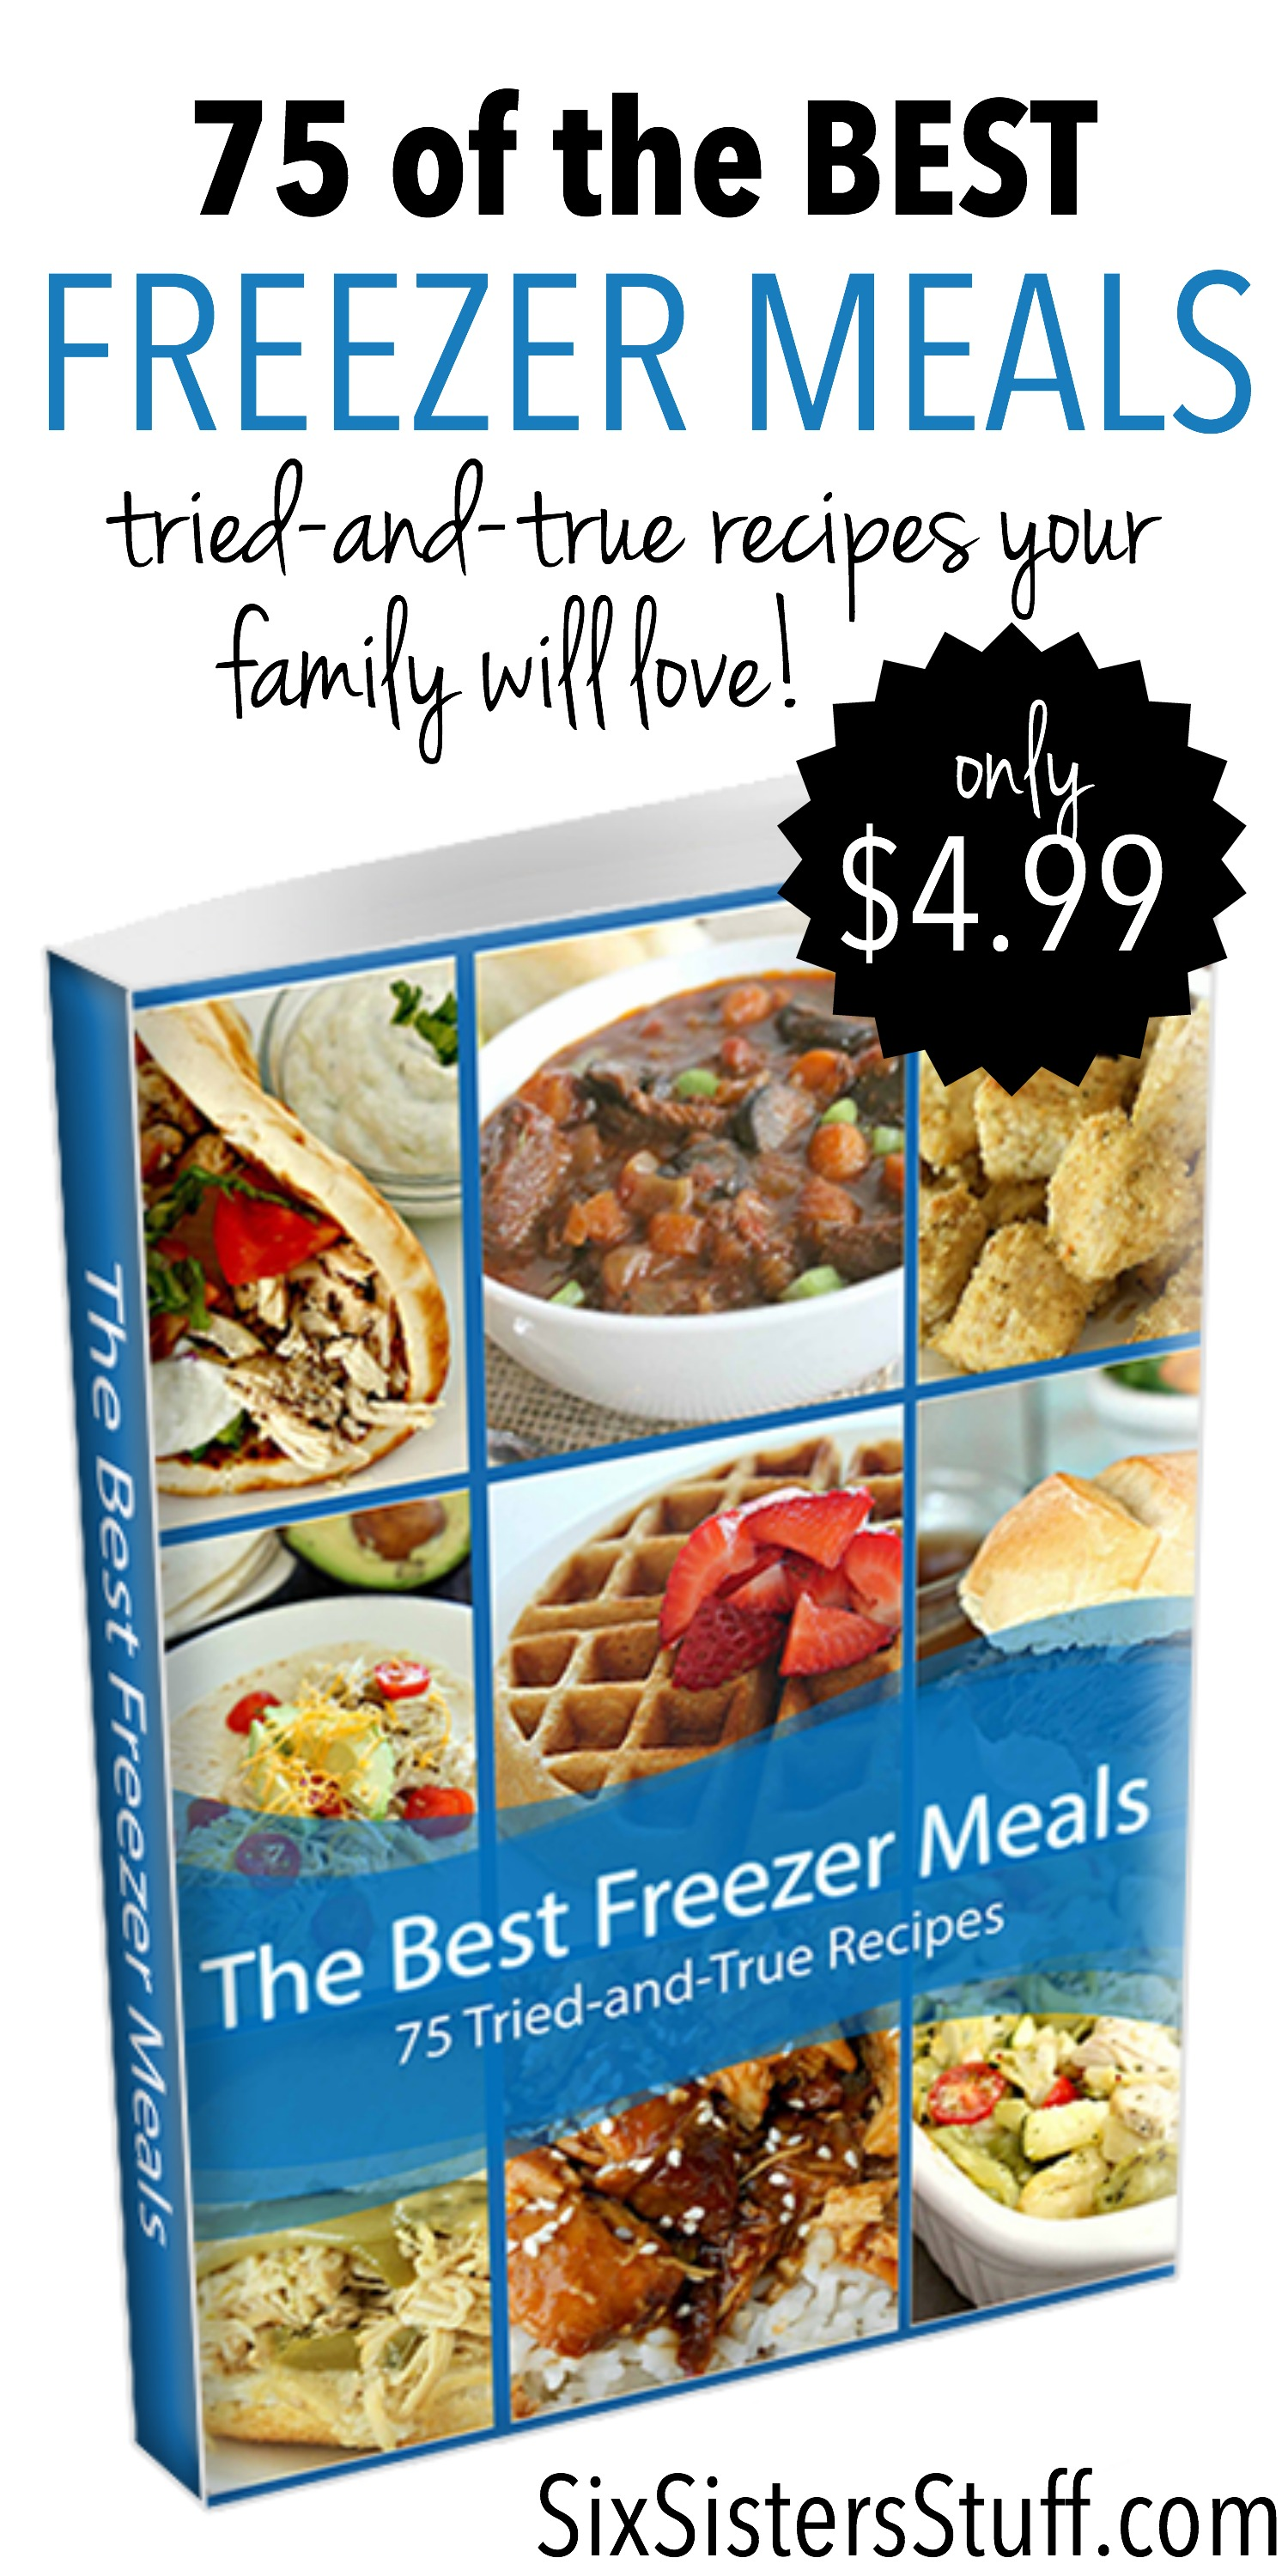 75 of the Best Freezer Meals with logo